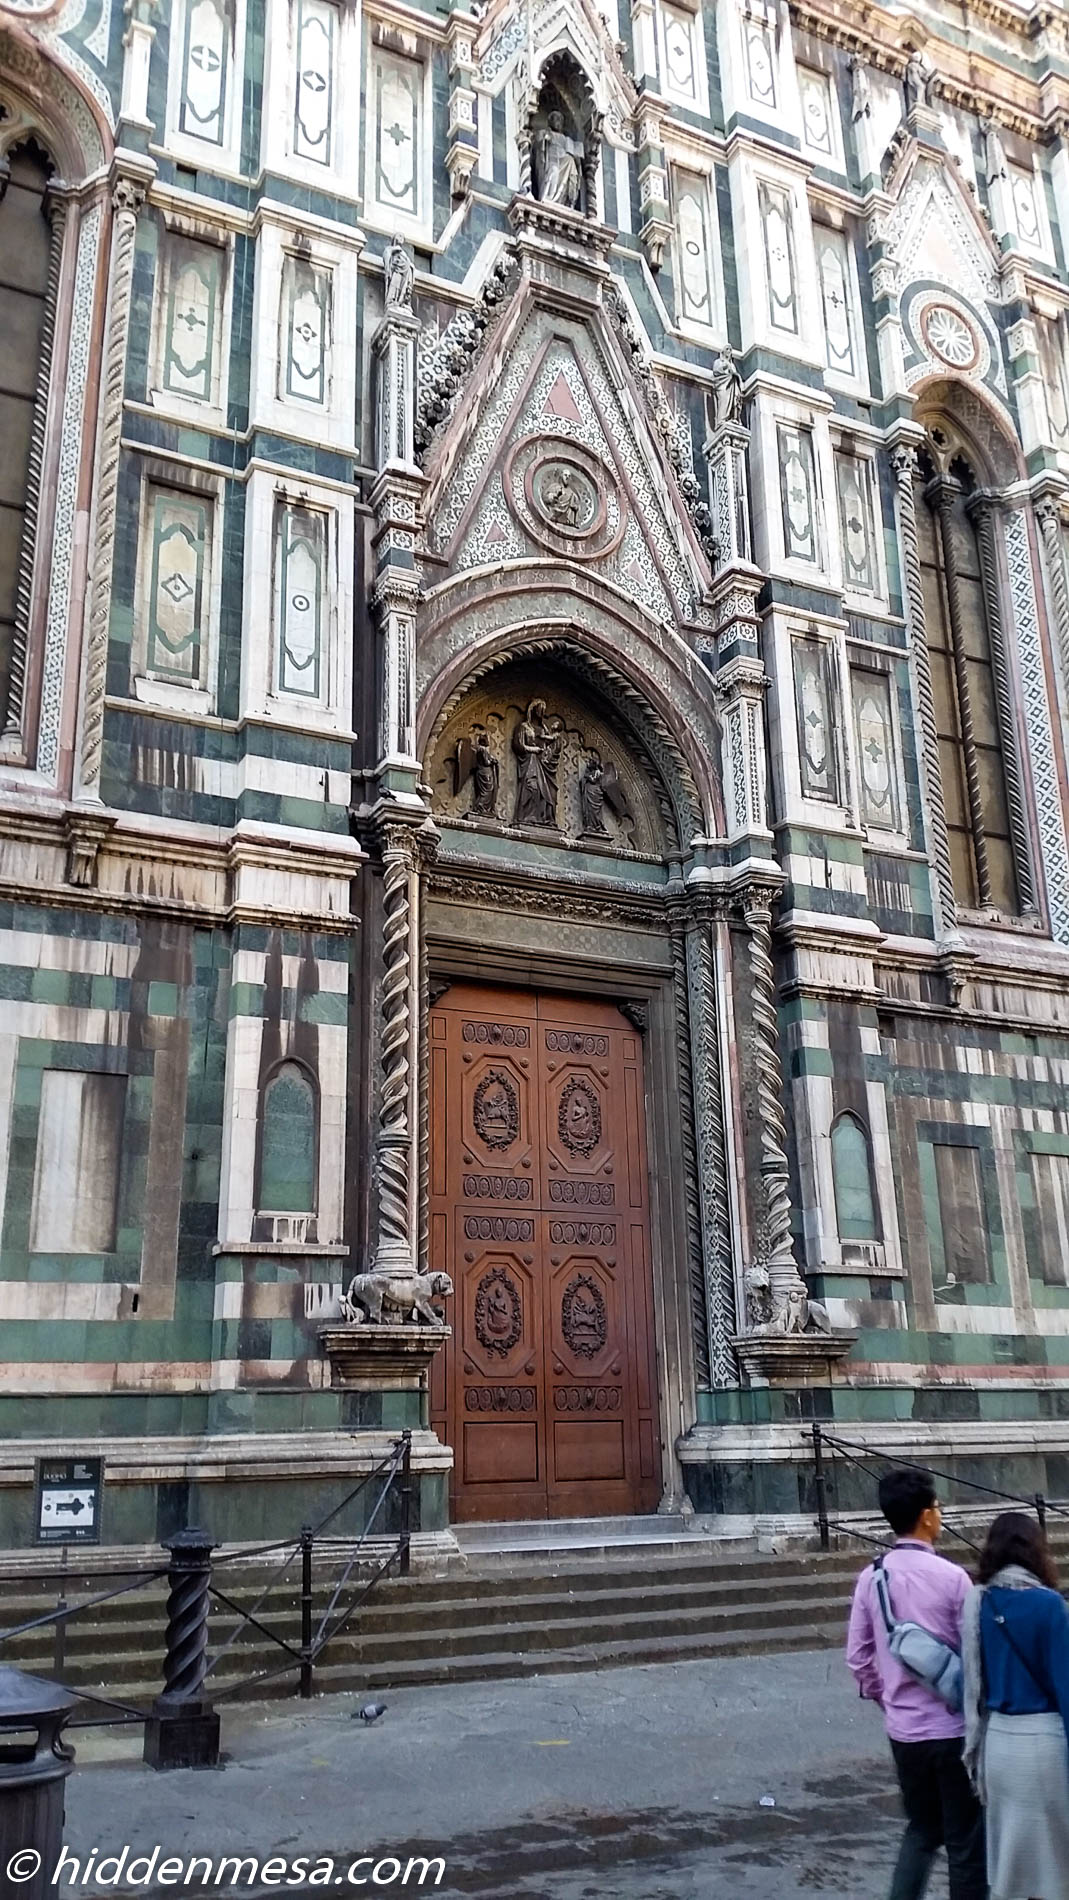 Carved Doors at Cattedrale di Santa Maria del Fiore